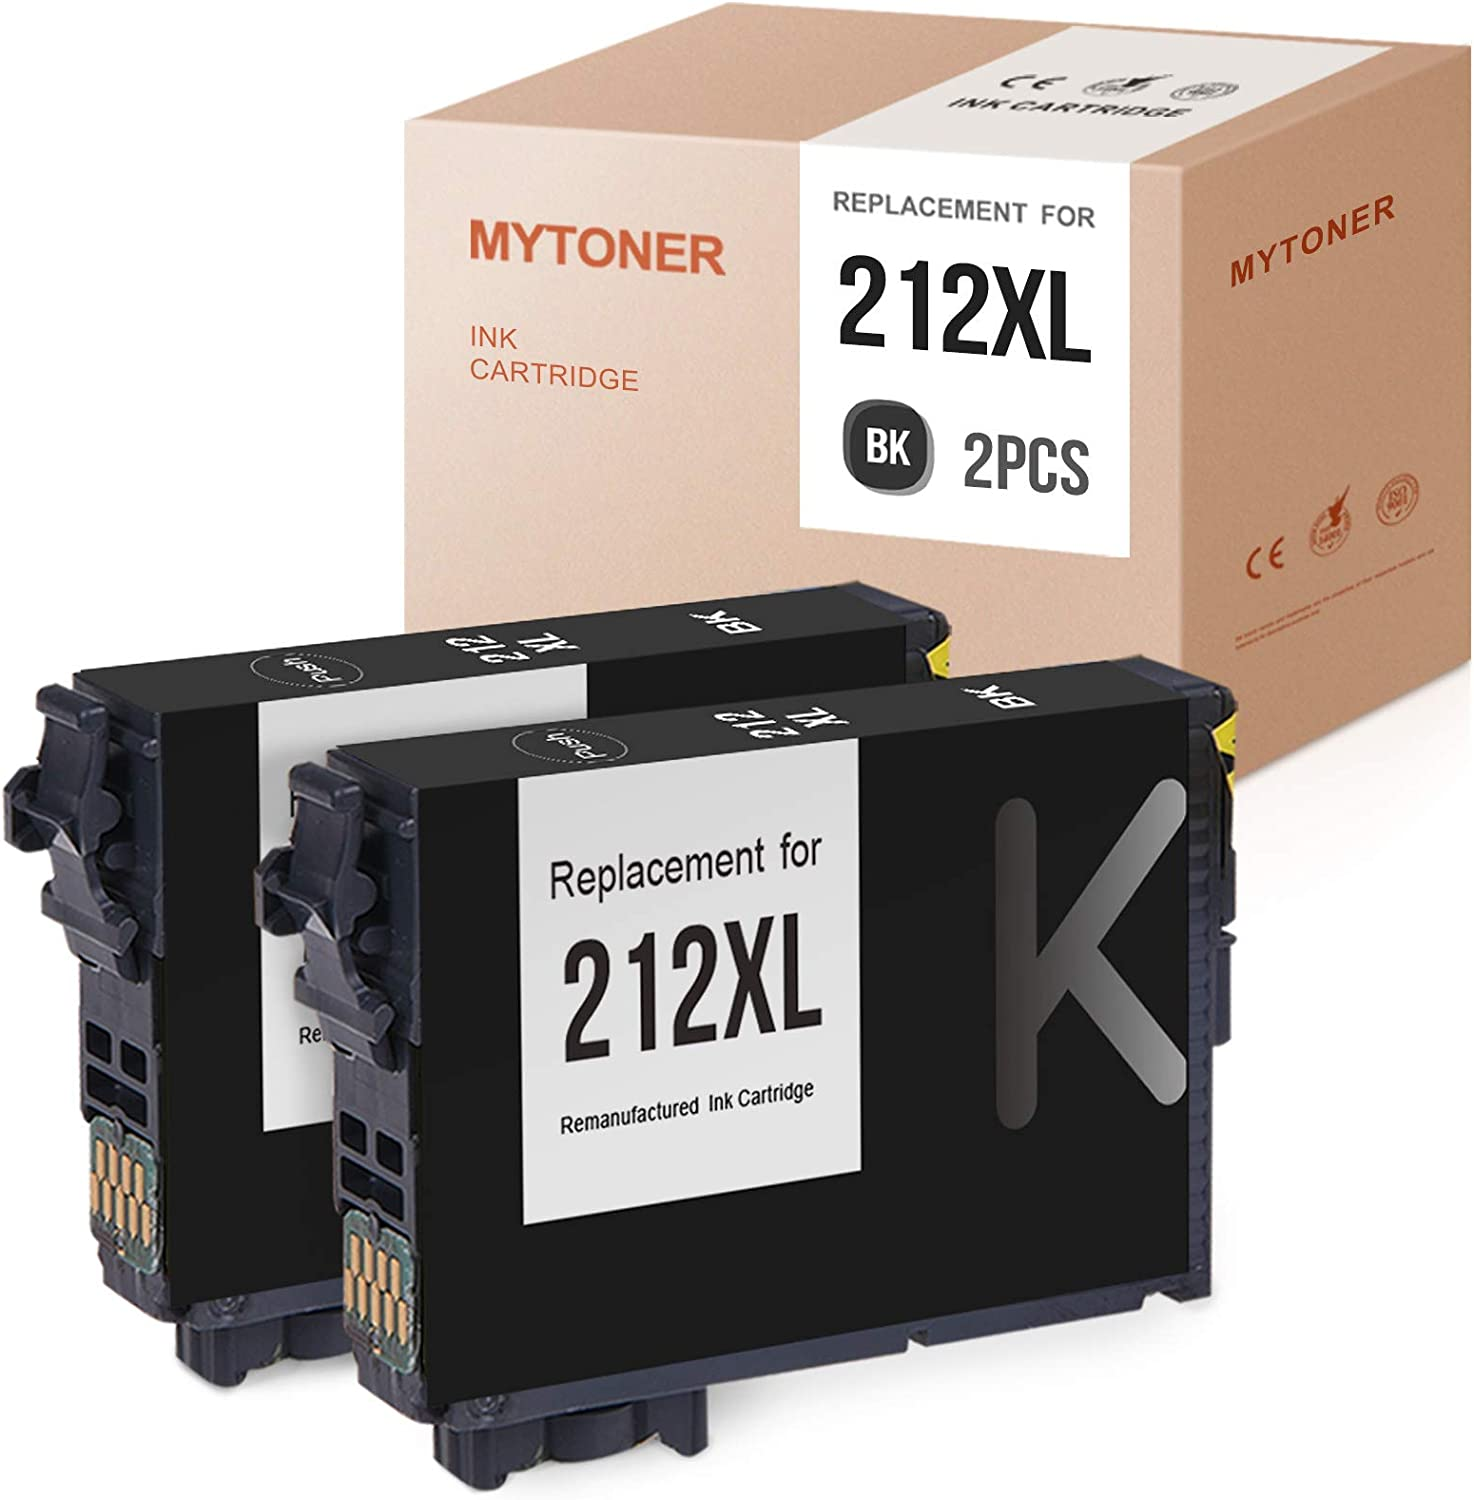 MYTONER Remanufactured Ink Cartridges Replacement for Epson 212XL T212XL 212 XL for Workforce WF-2850 WF-2830 Expression Home XP-4105 XP-4100 (Black, 2-Pack)